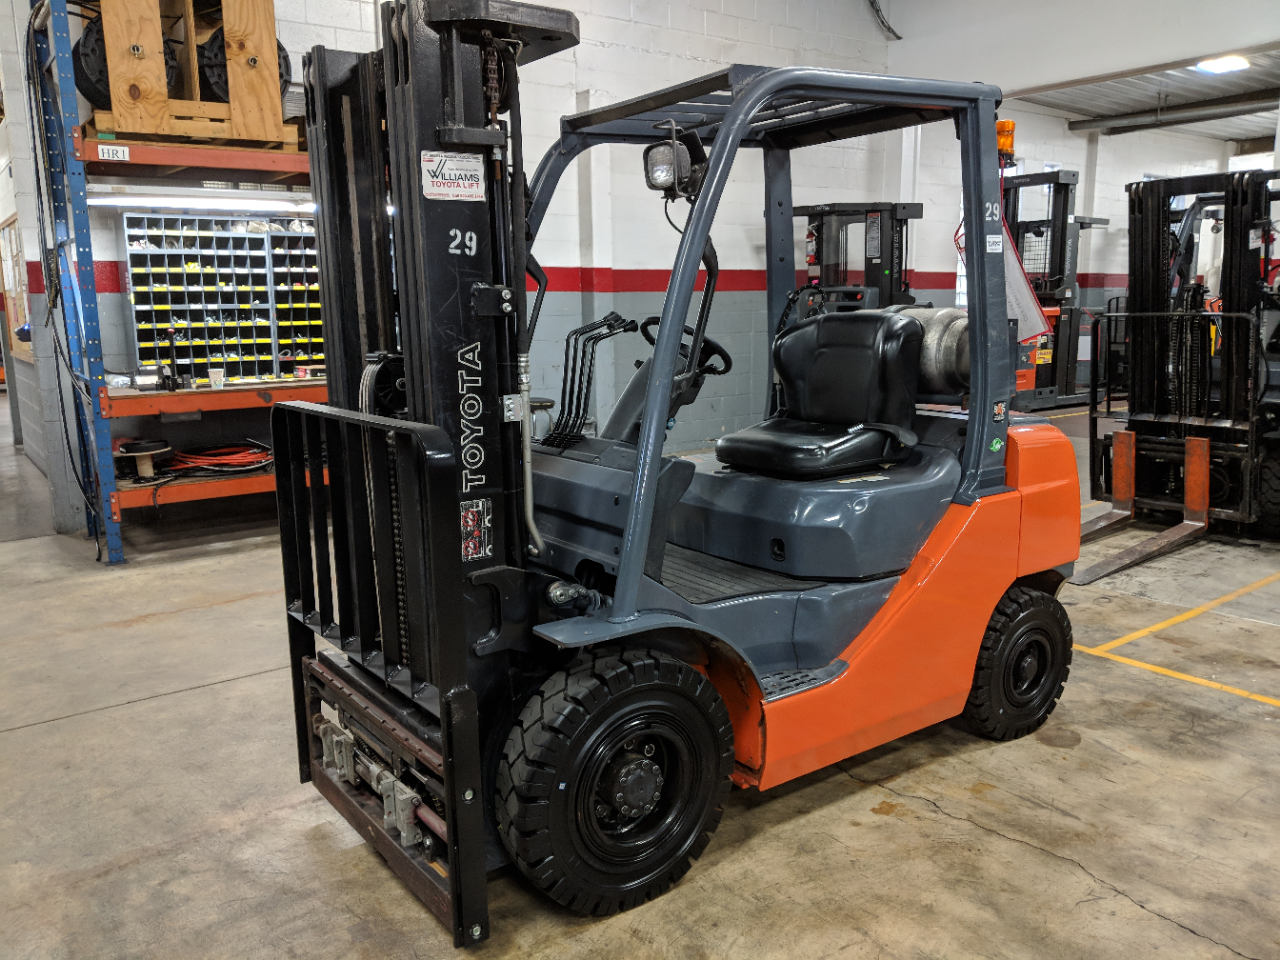 Used Forklifts in Akron | Used Forklifts for Sale in Canton